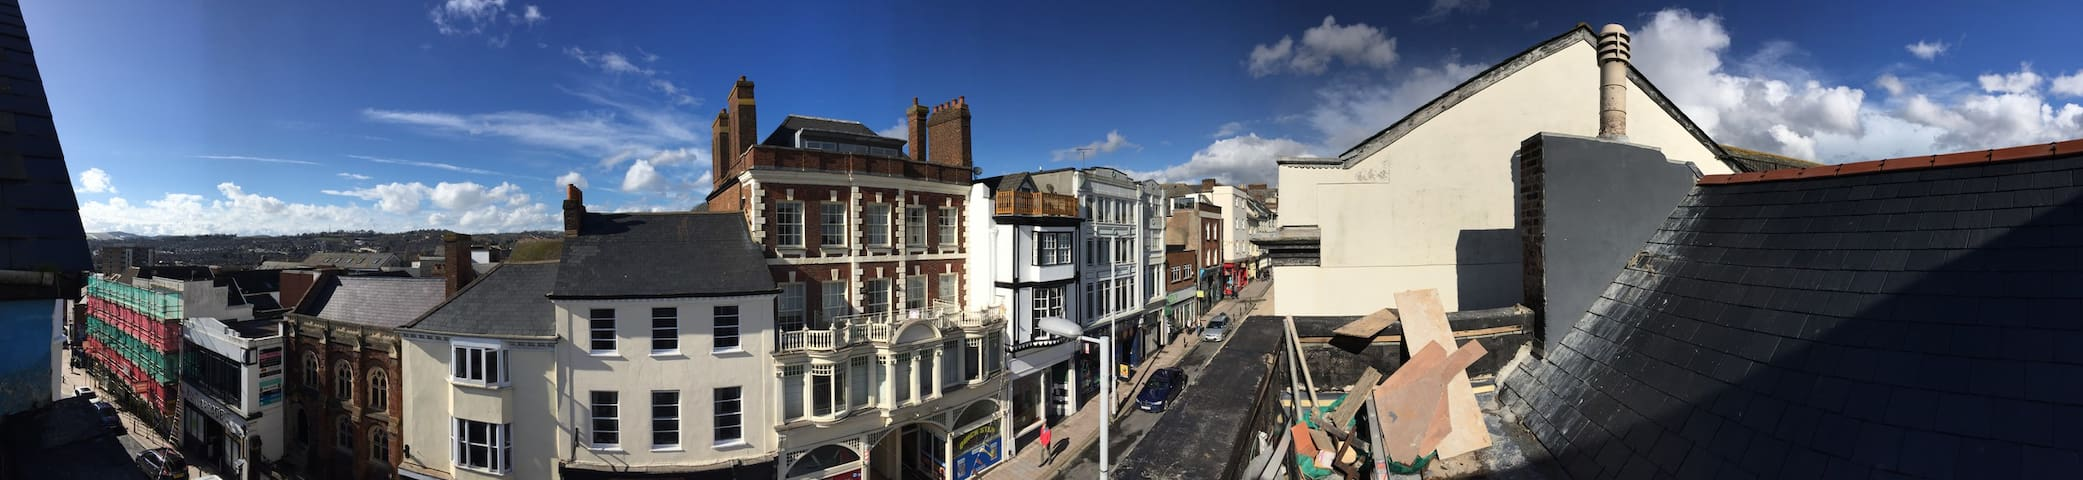 Central Exeter 3 bed apartment with roof terrace